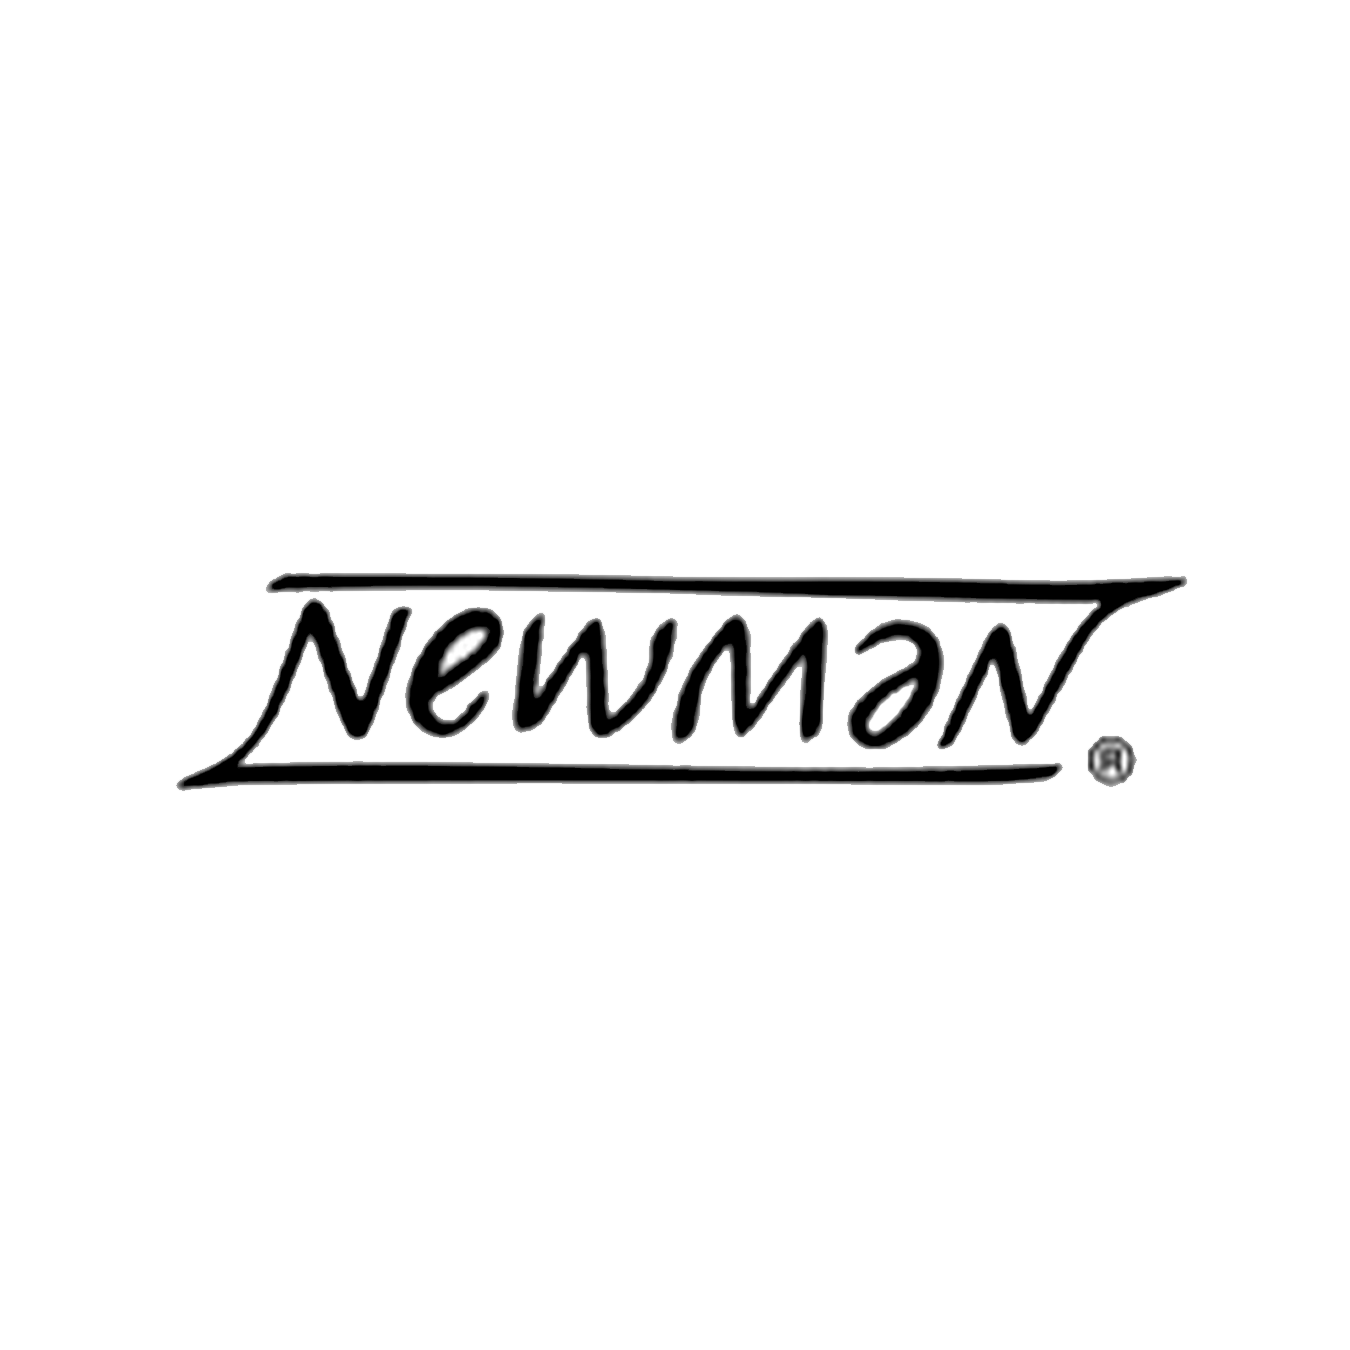 newman white.png